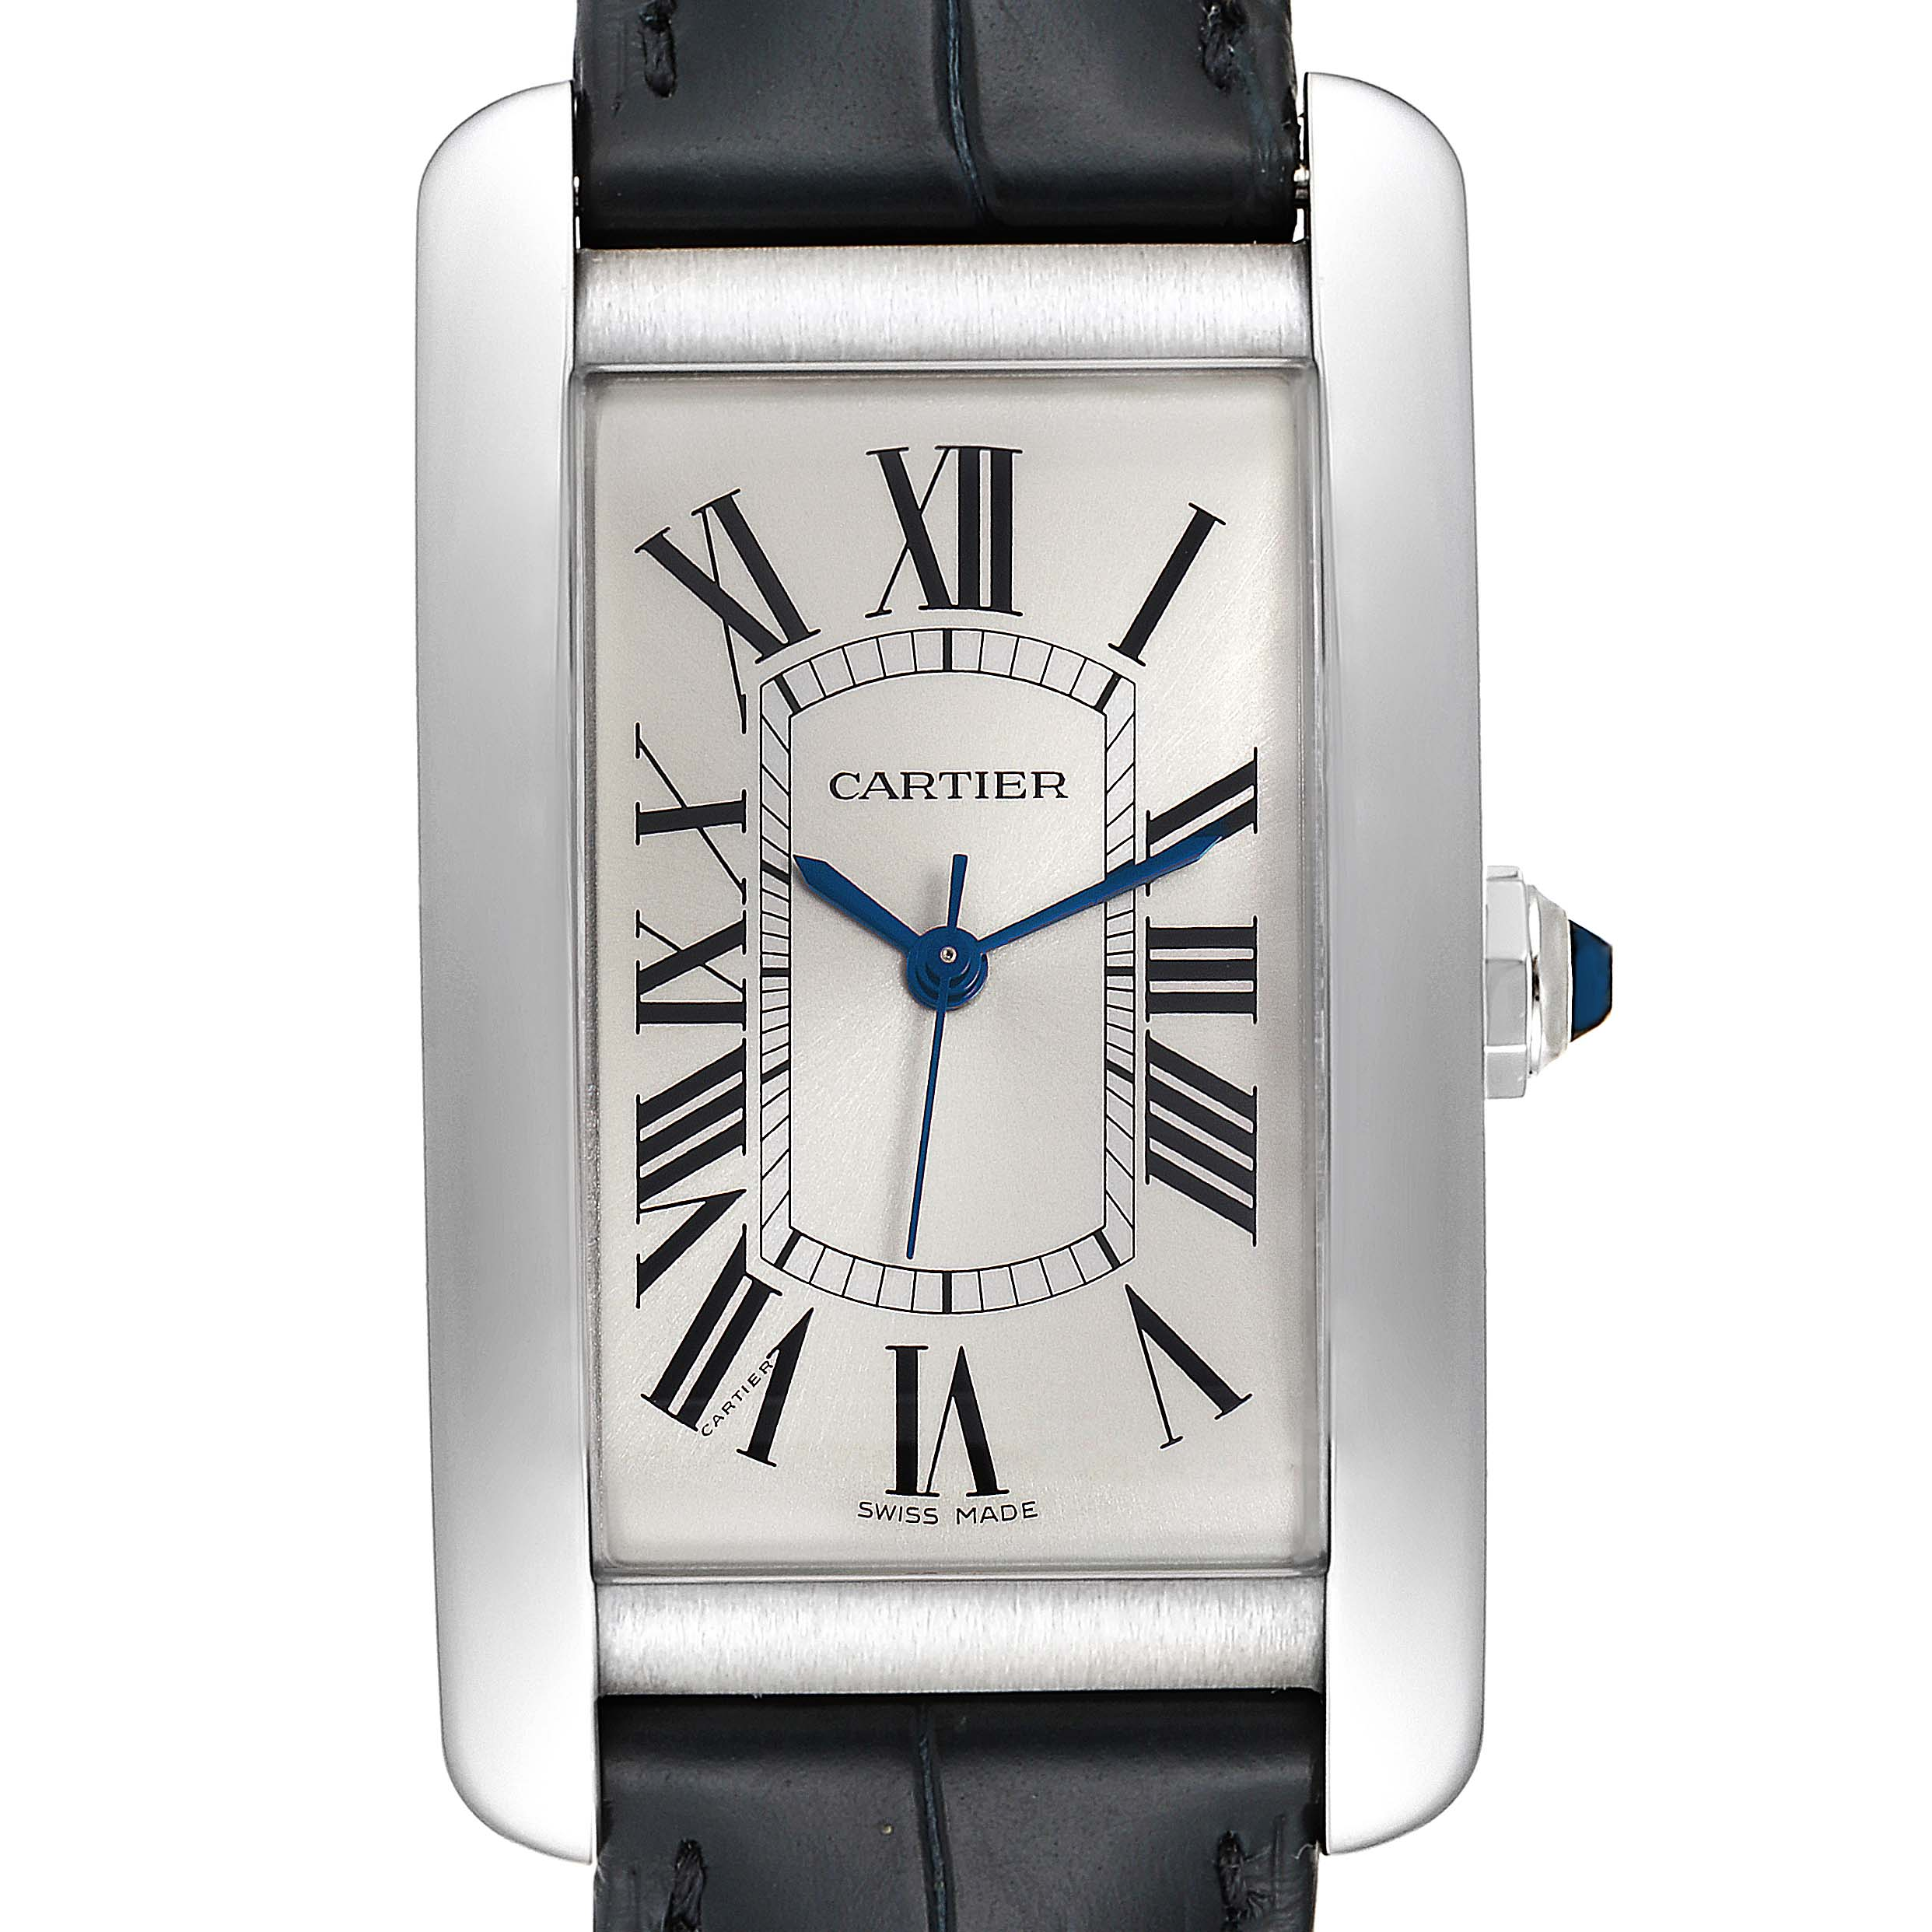 Photo of Cartier Tank Americaine White Gold Large Mens Watch WSTA0018 Box Papers